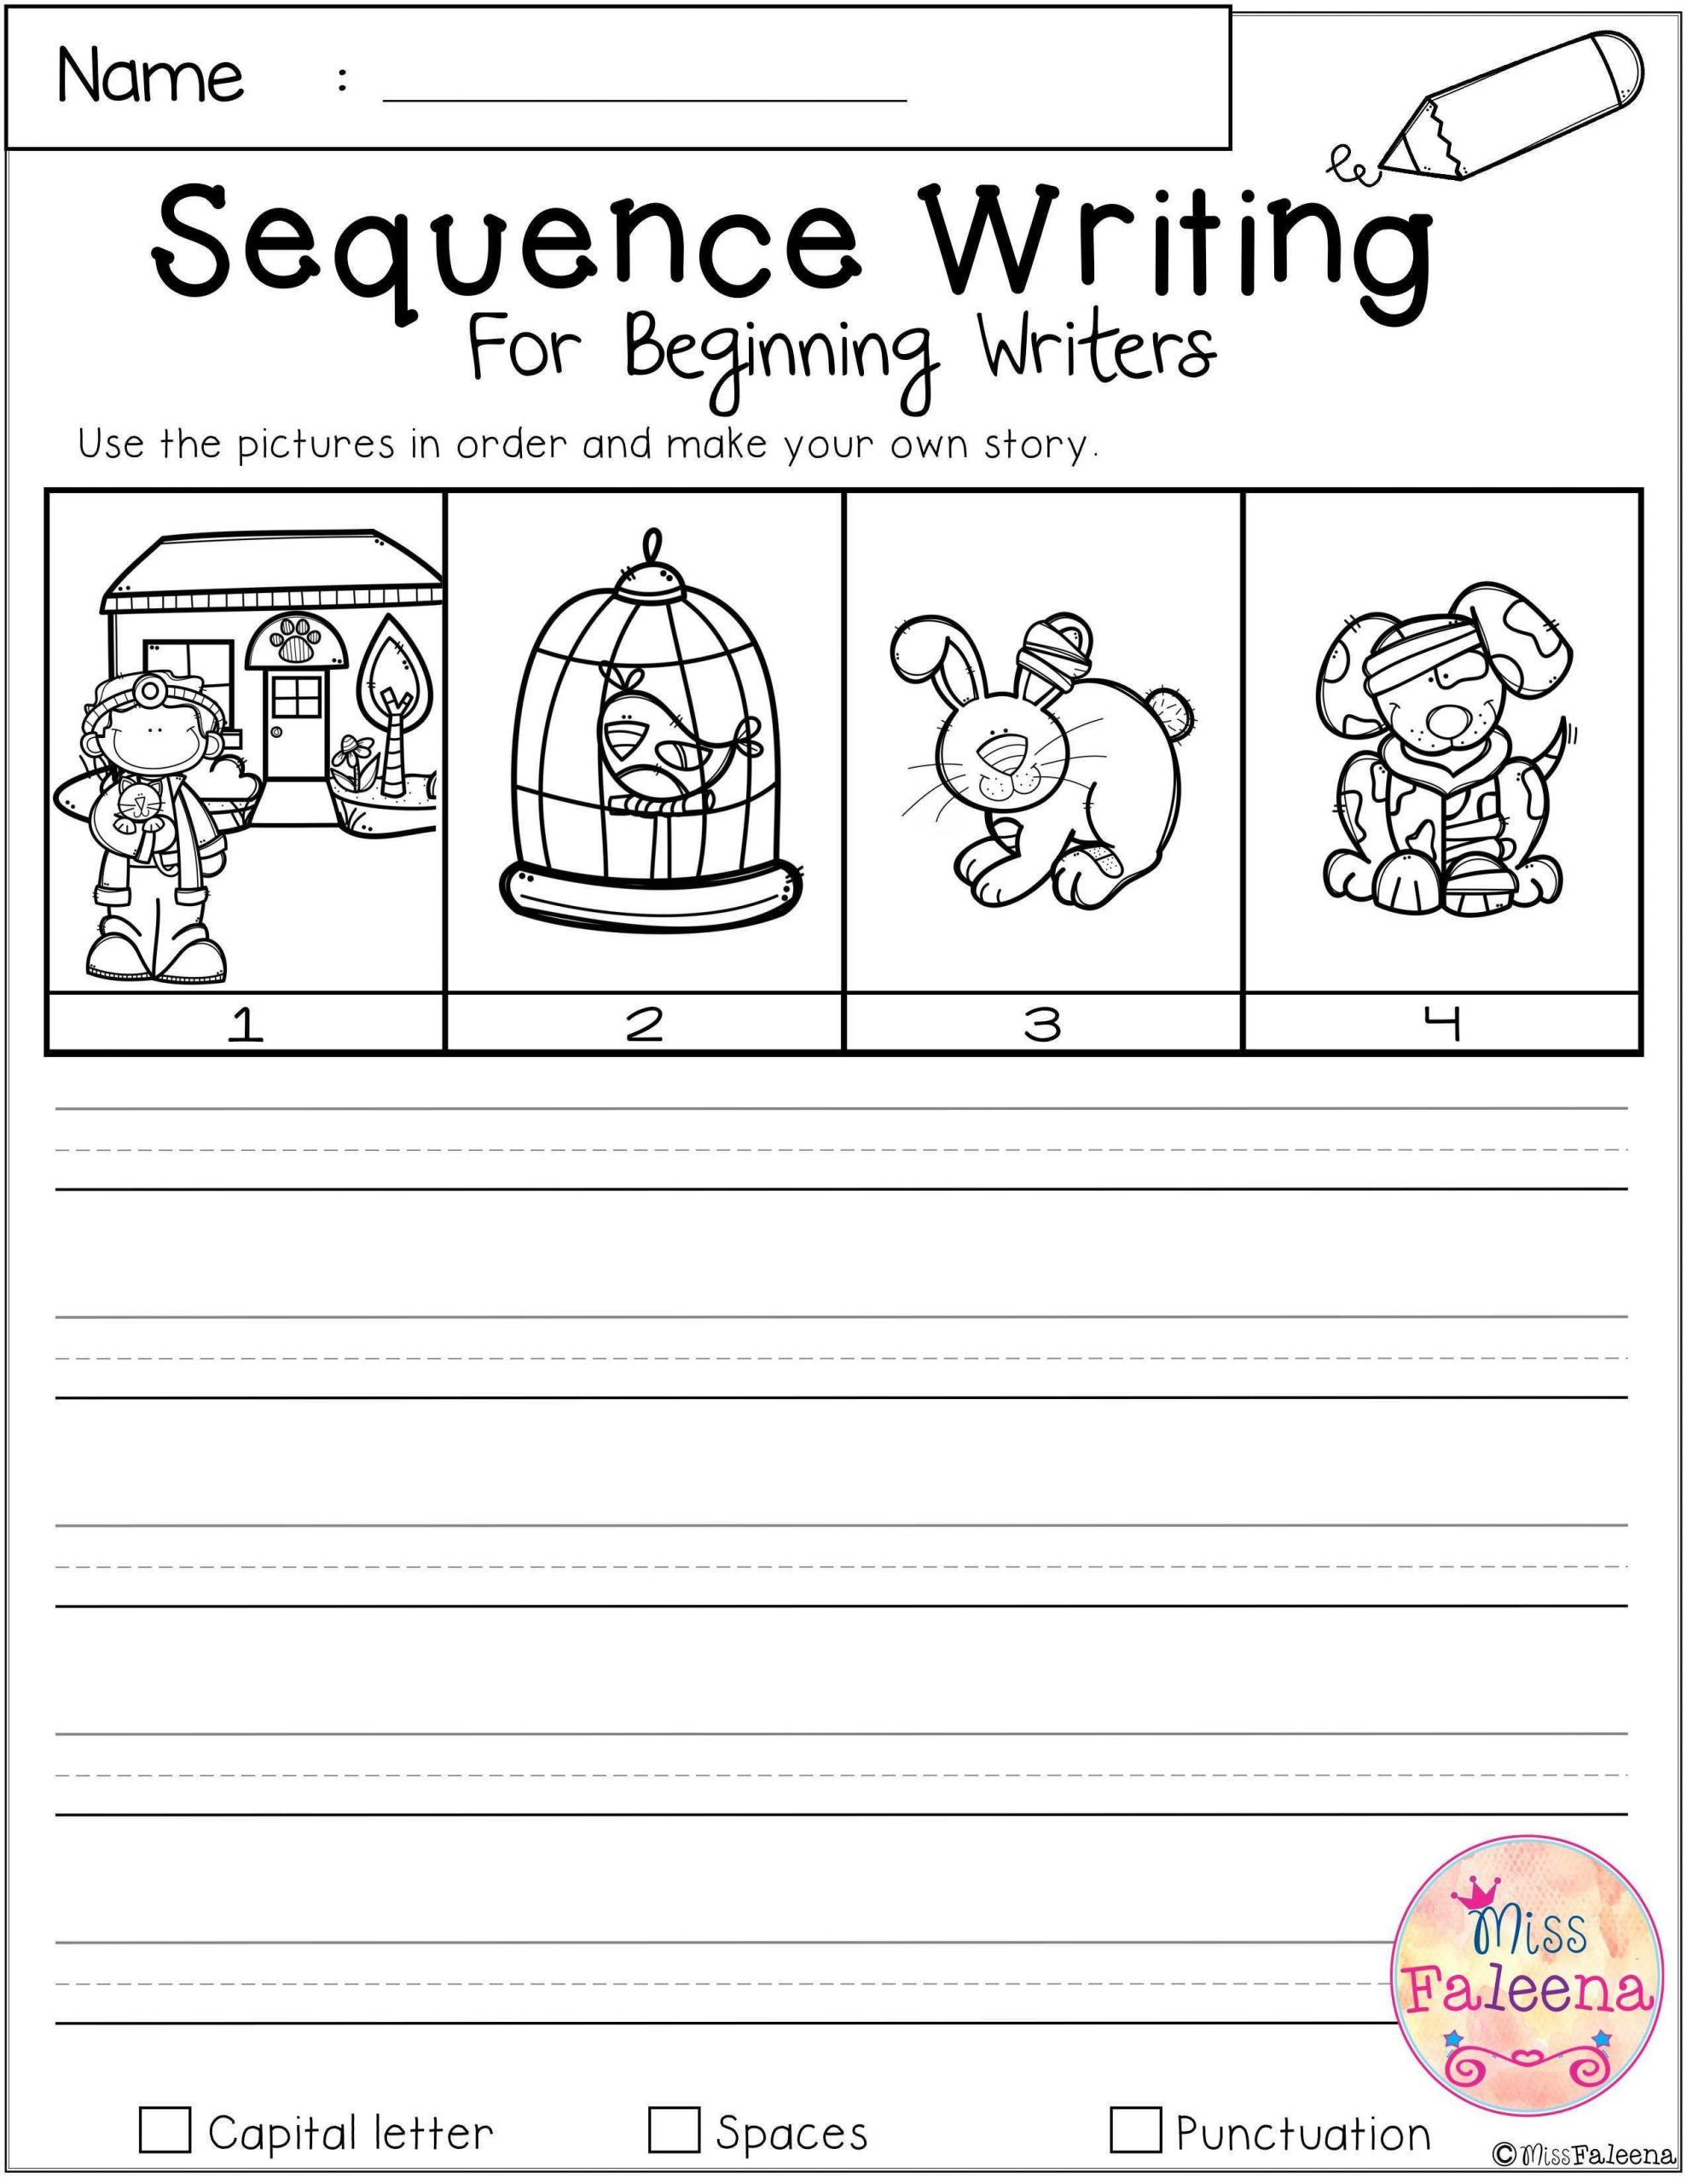 Sequence Worksheets 2nd Grade Free Sequence Writing for Beginning Writers